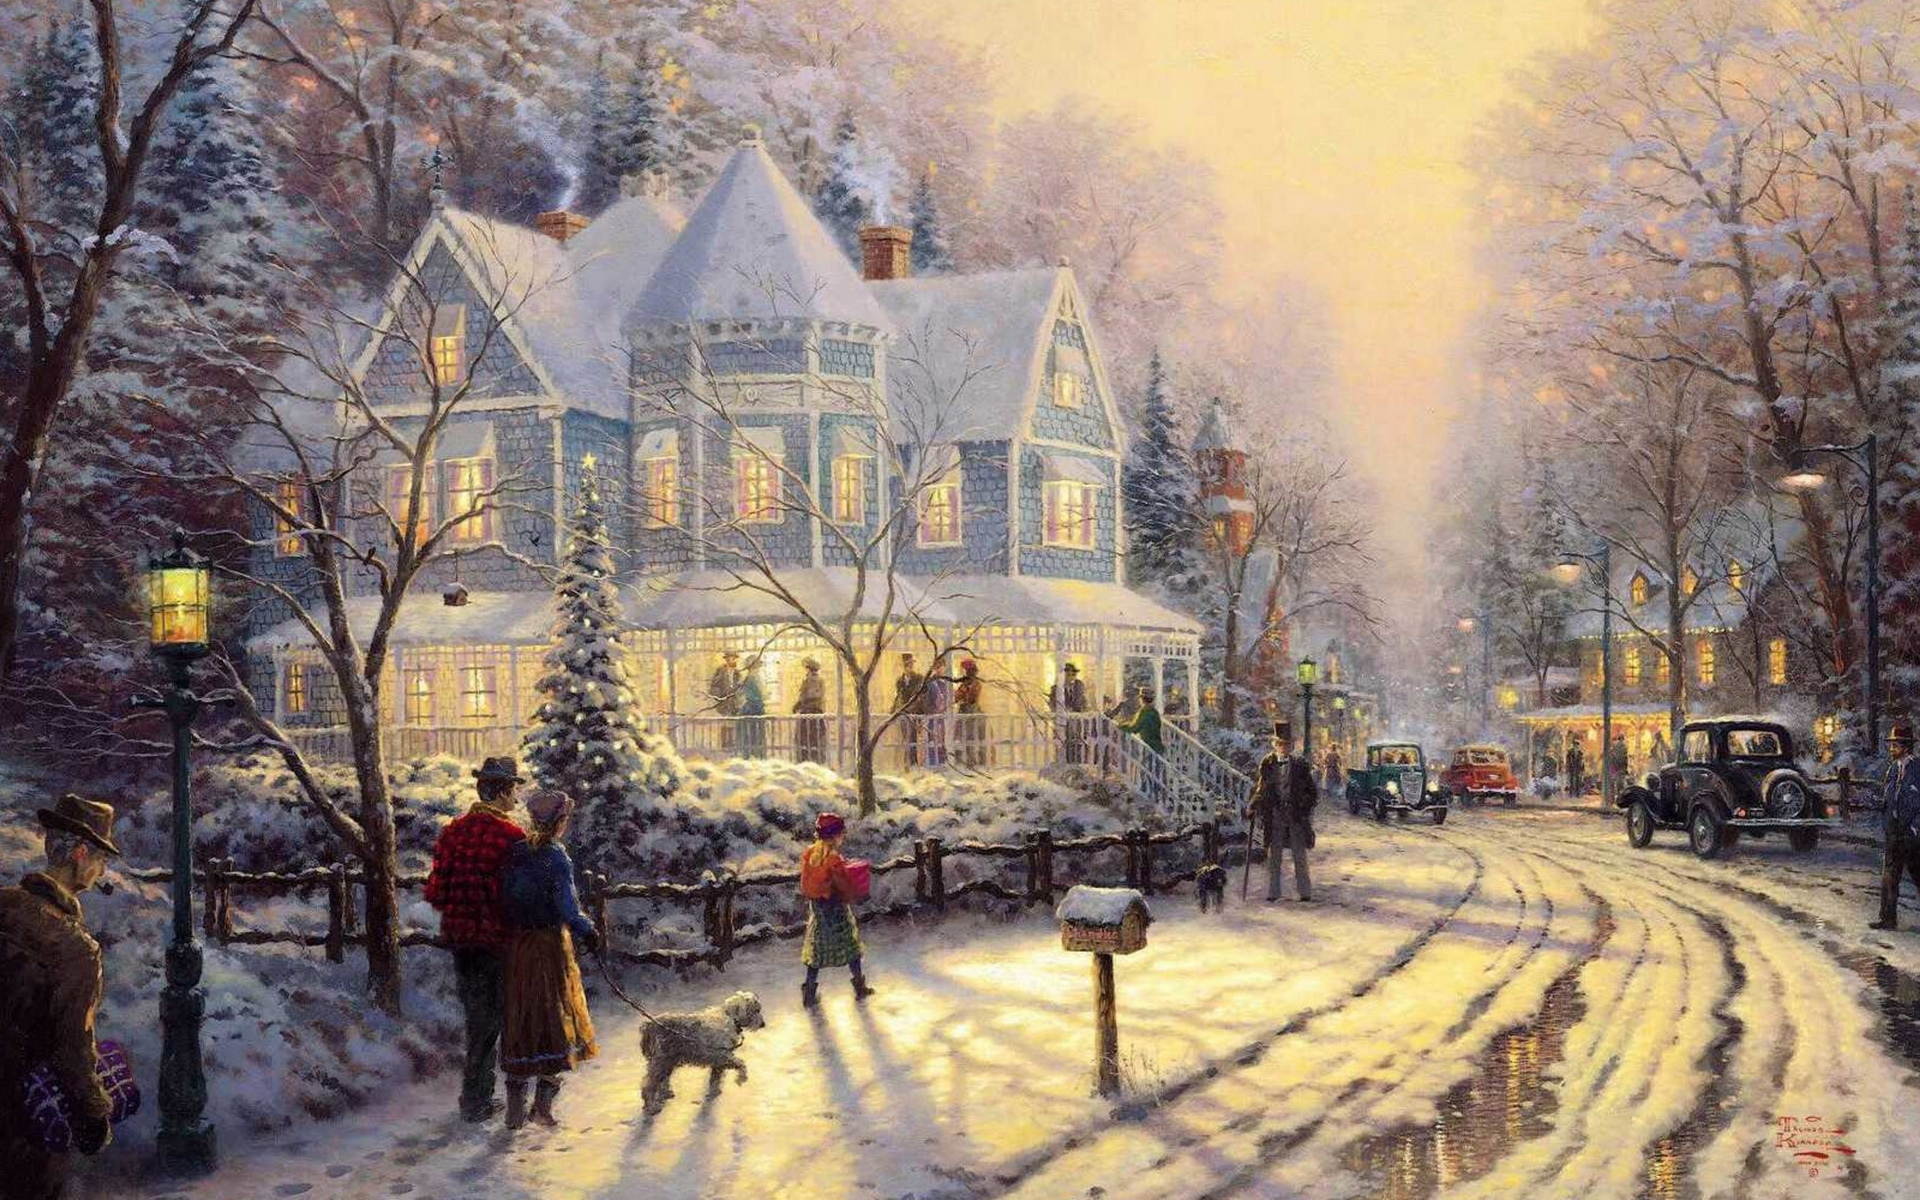 old fashioned christmas town wallpaper - photo #27